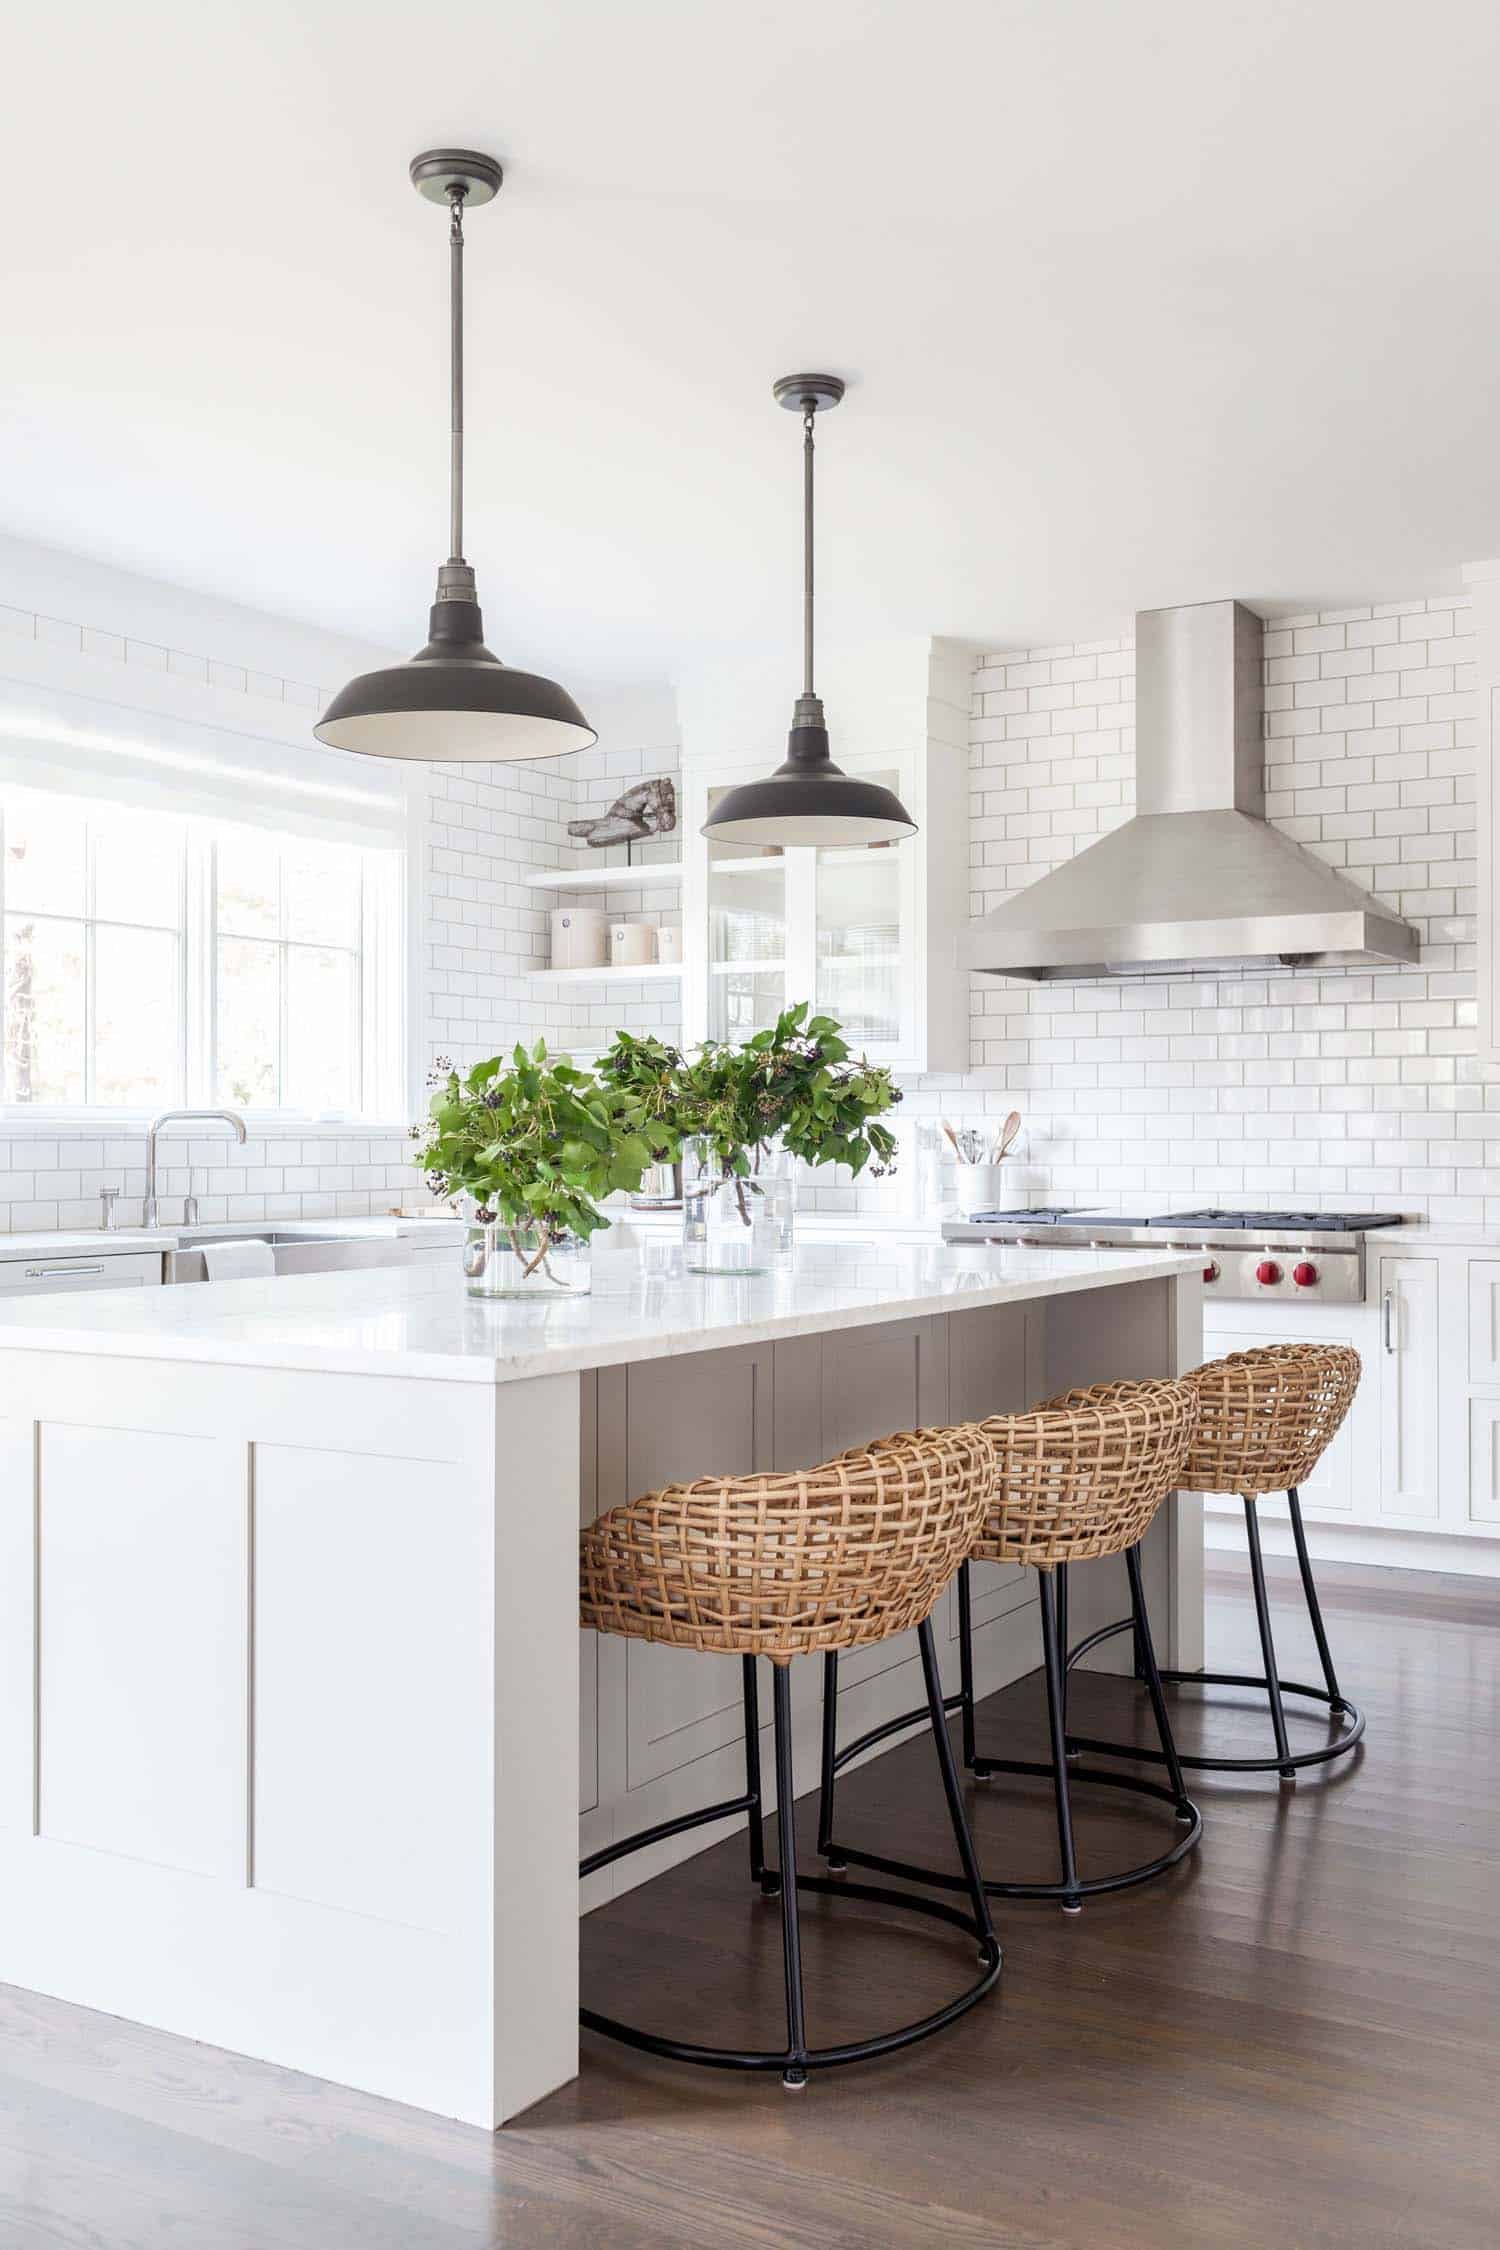 Westport Modern Farmhouse-Chango-Co-14-1-Kindesign